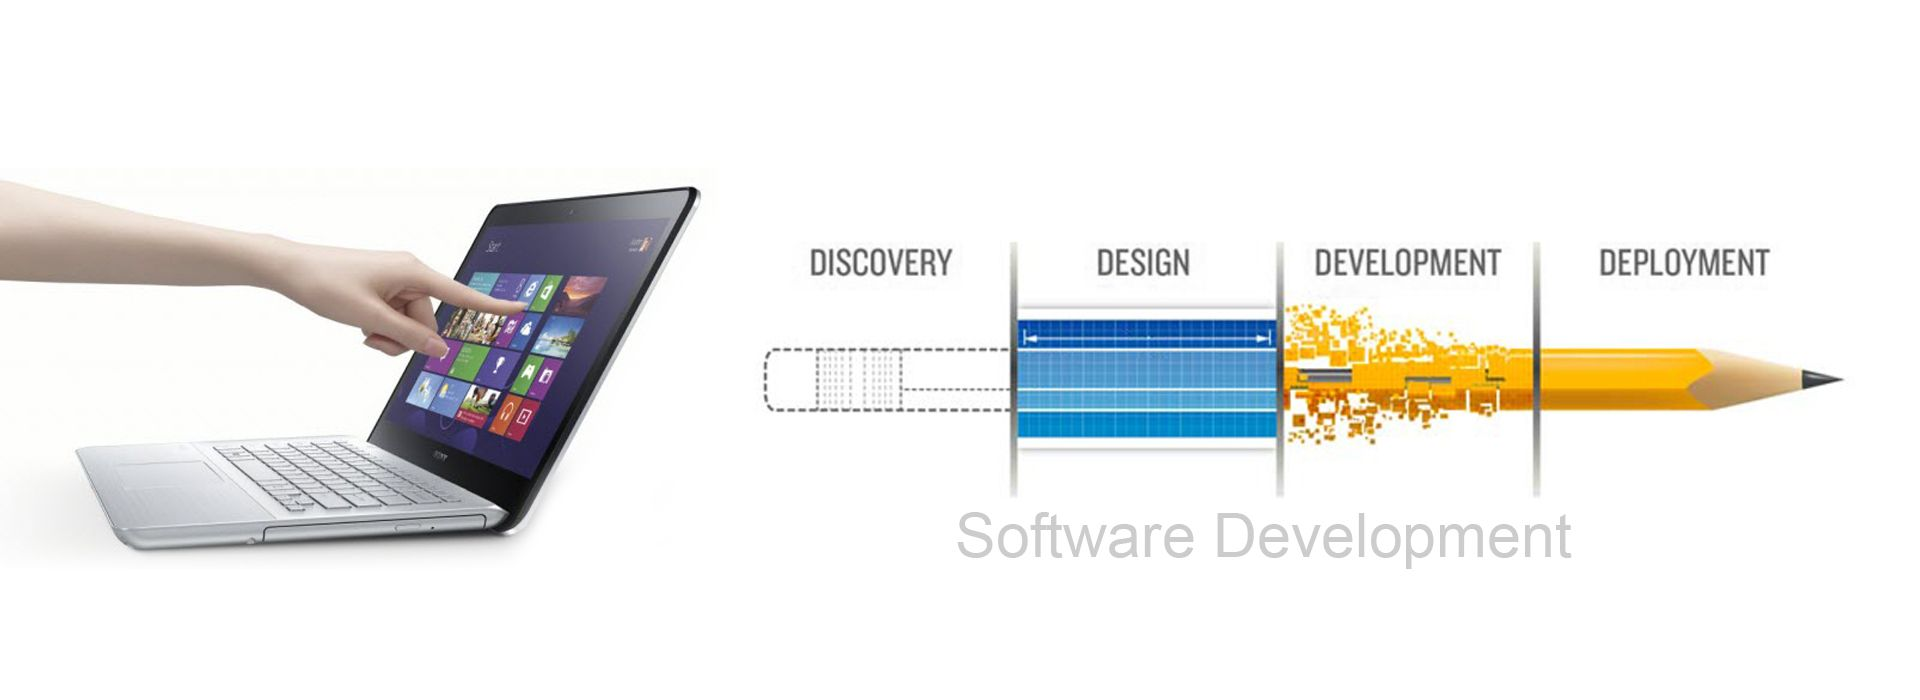 Software Development Slider